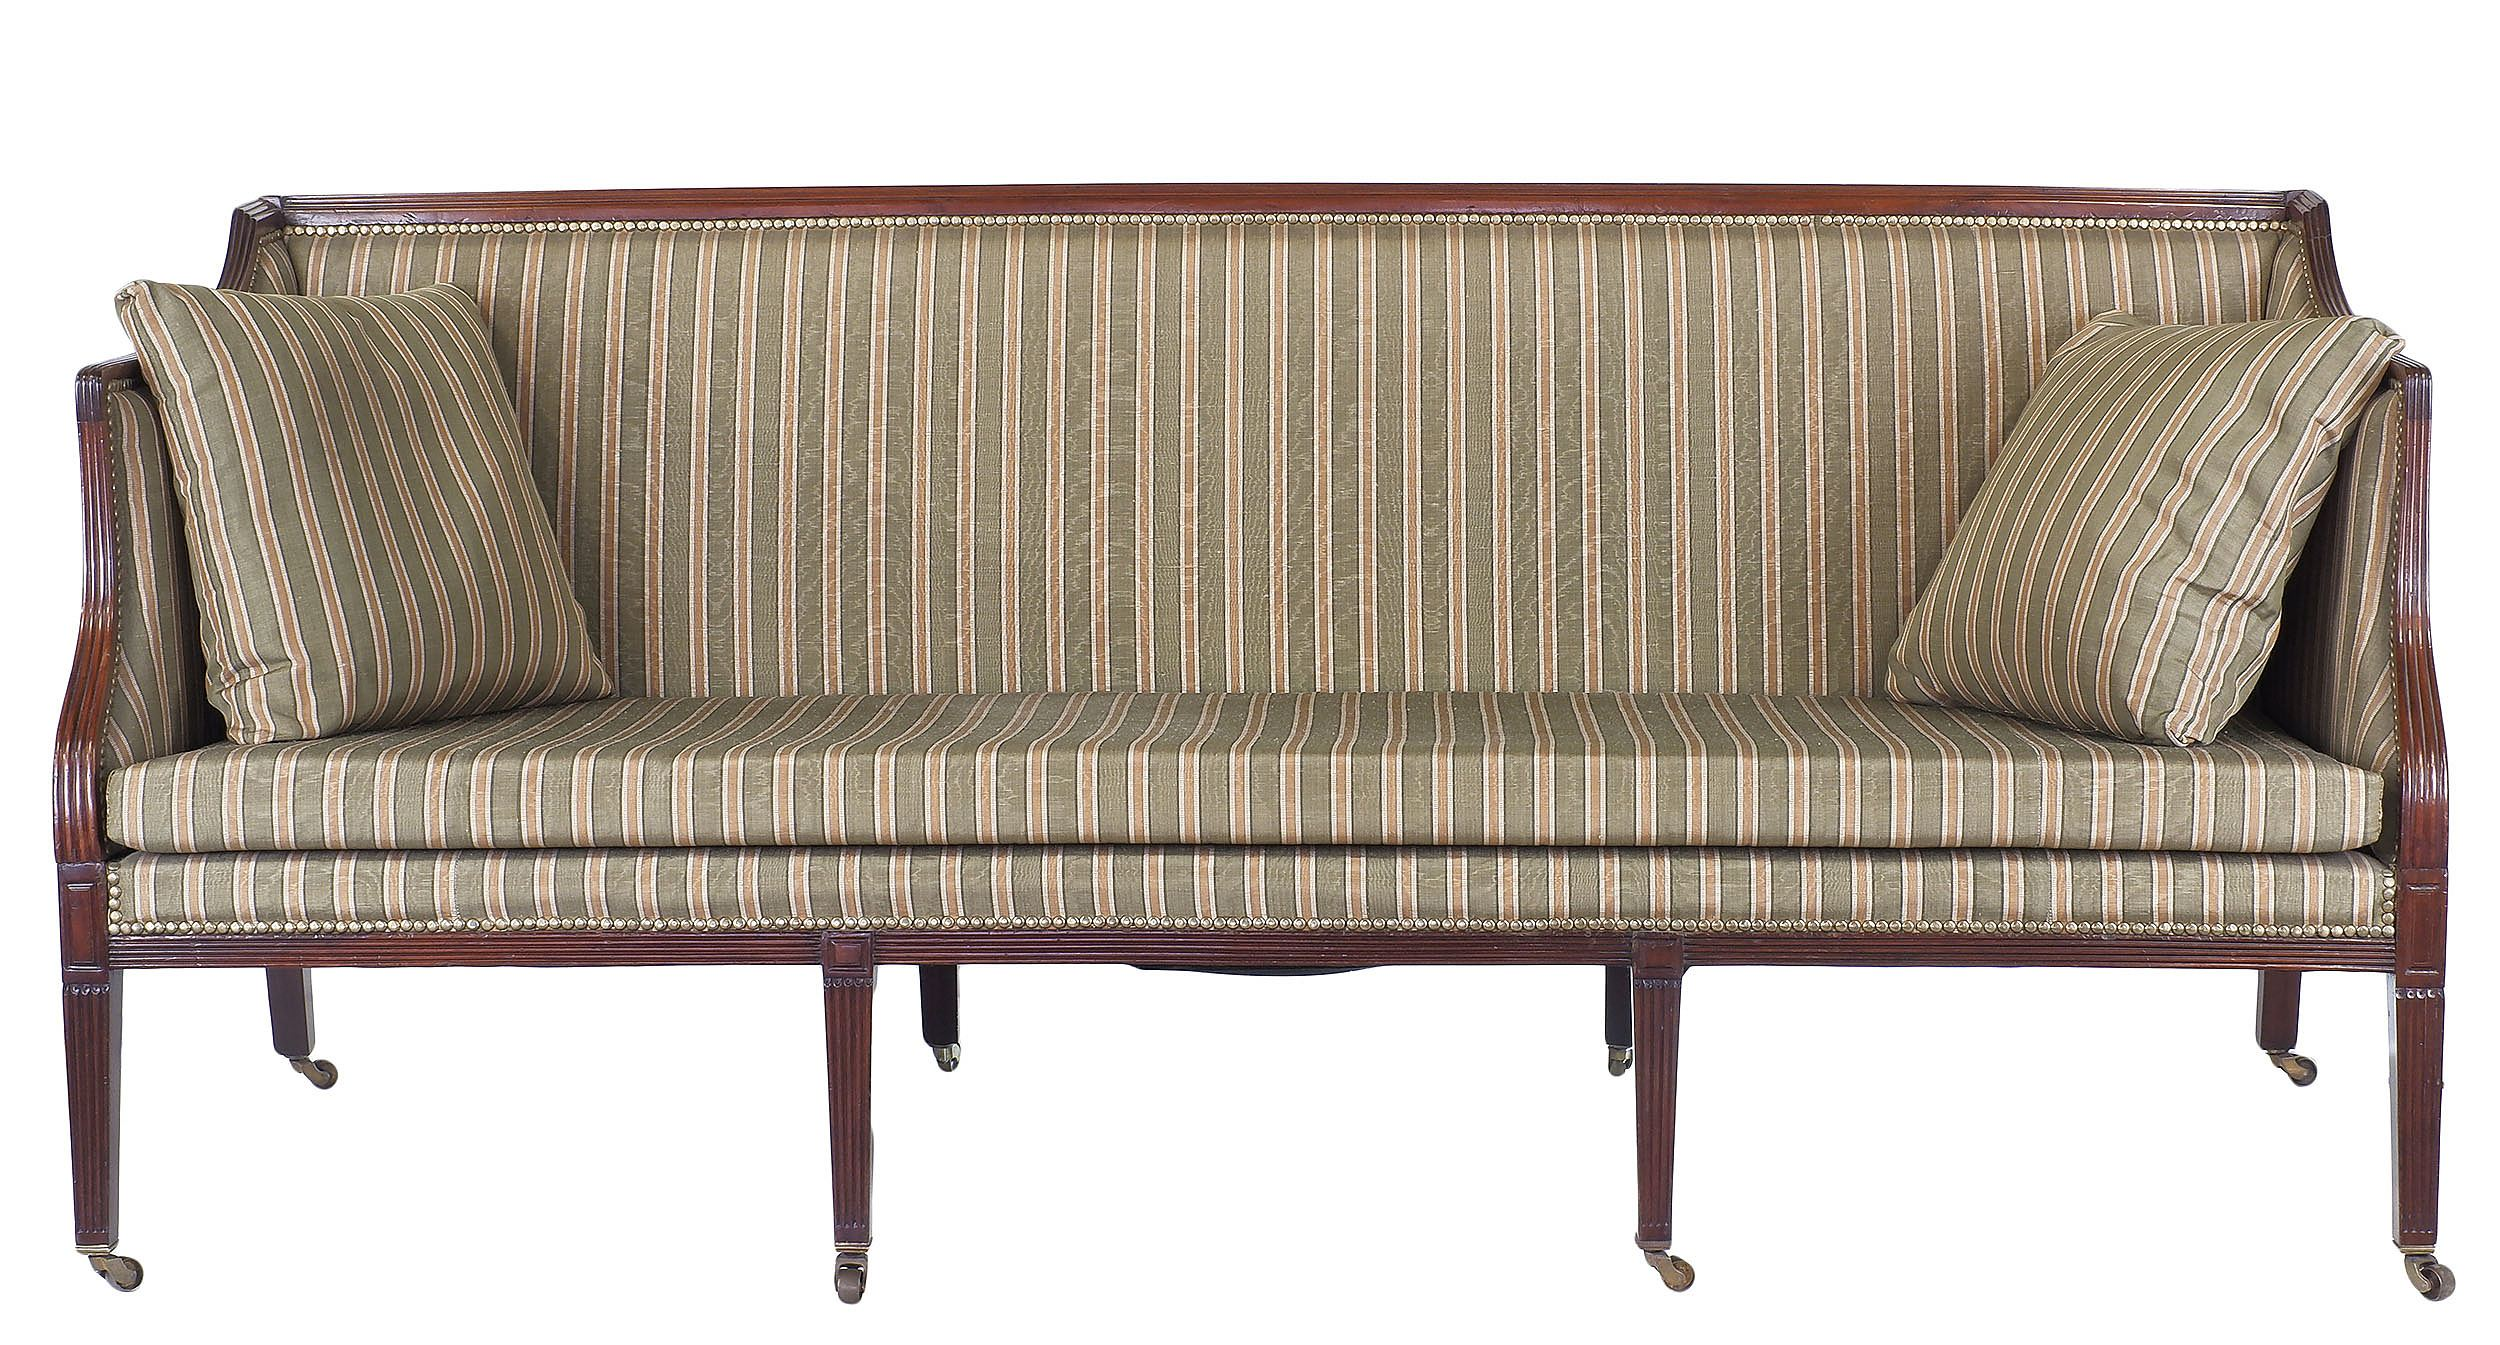 'George III Upholstered Square Back Settee of Hepplewhite Design Circa 1800'